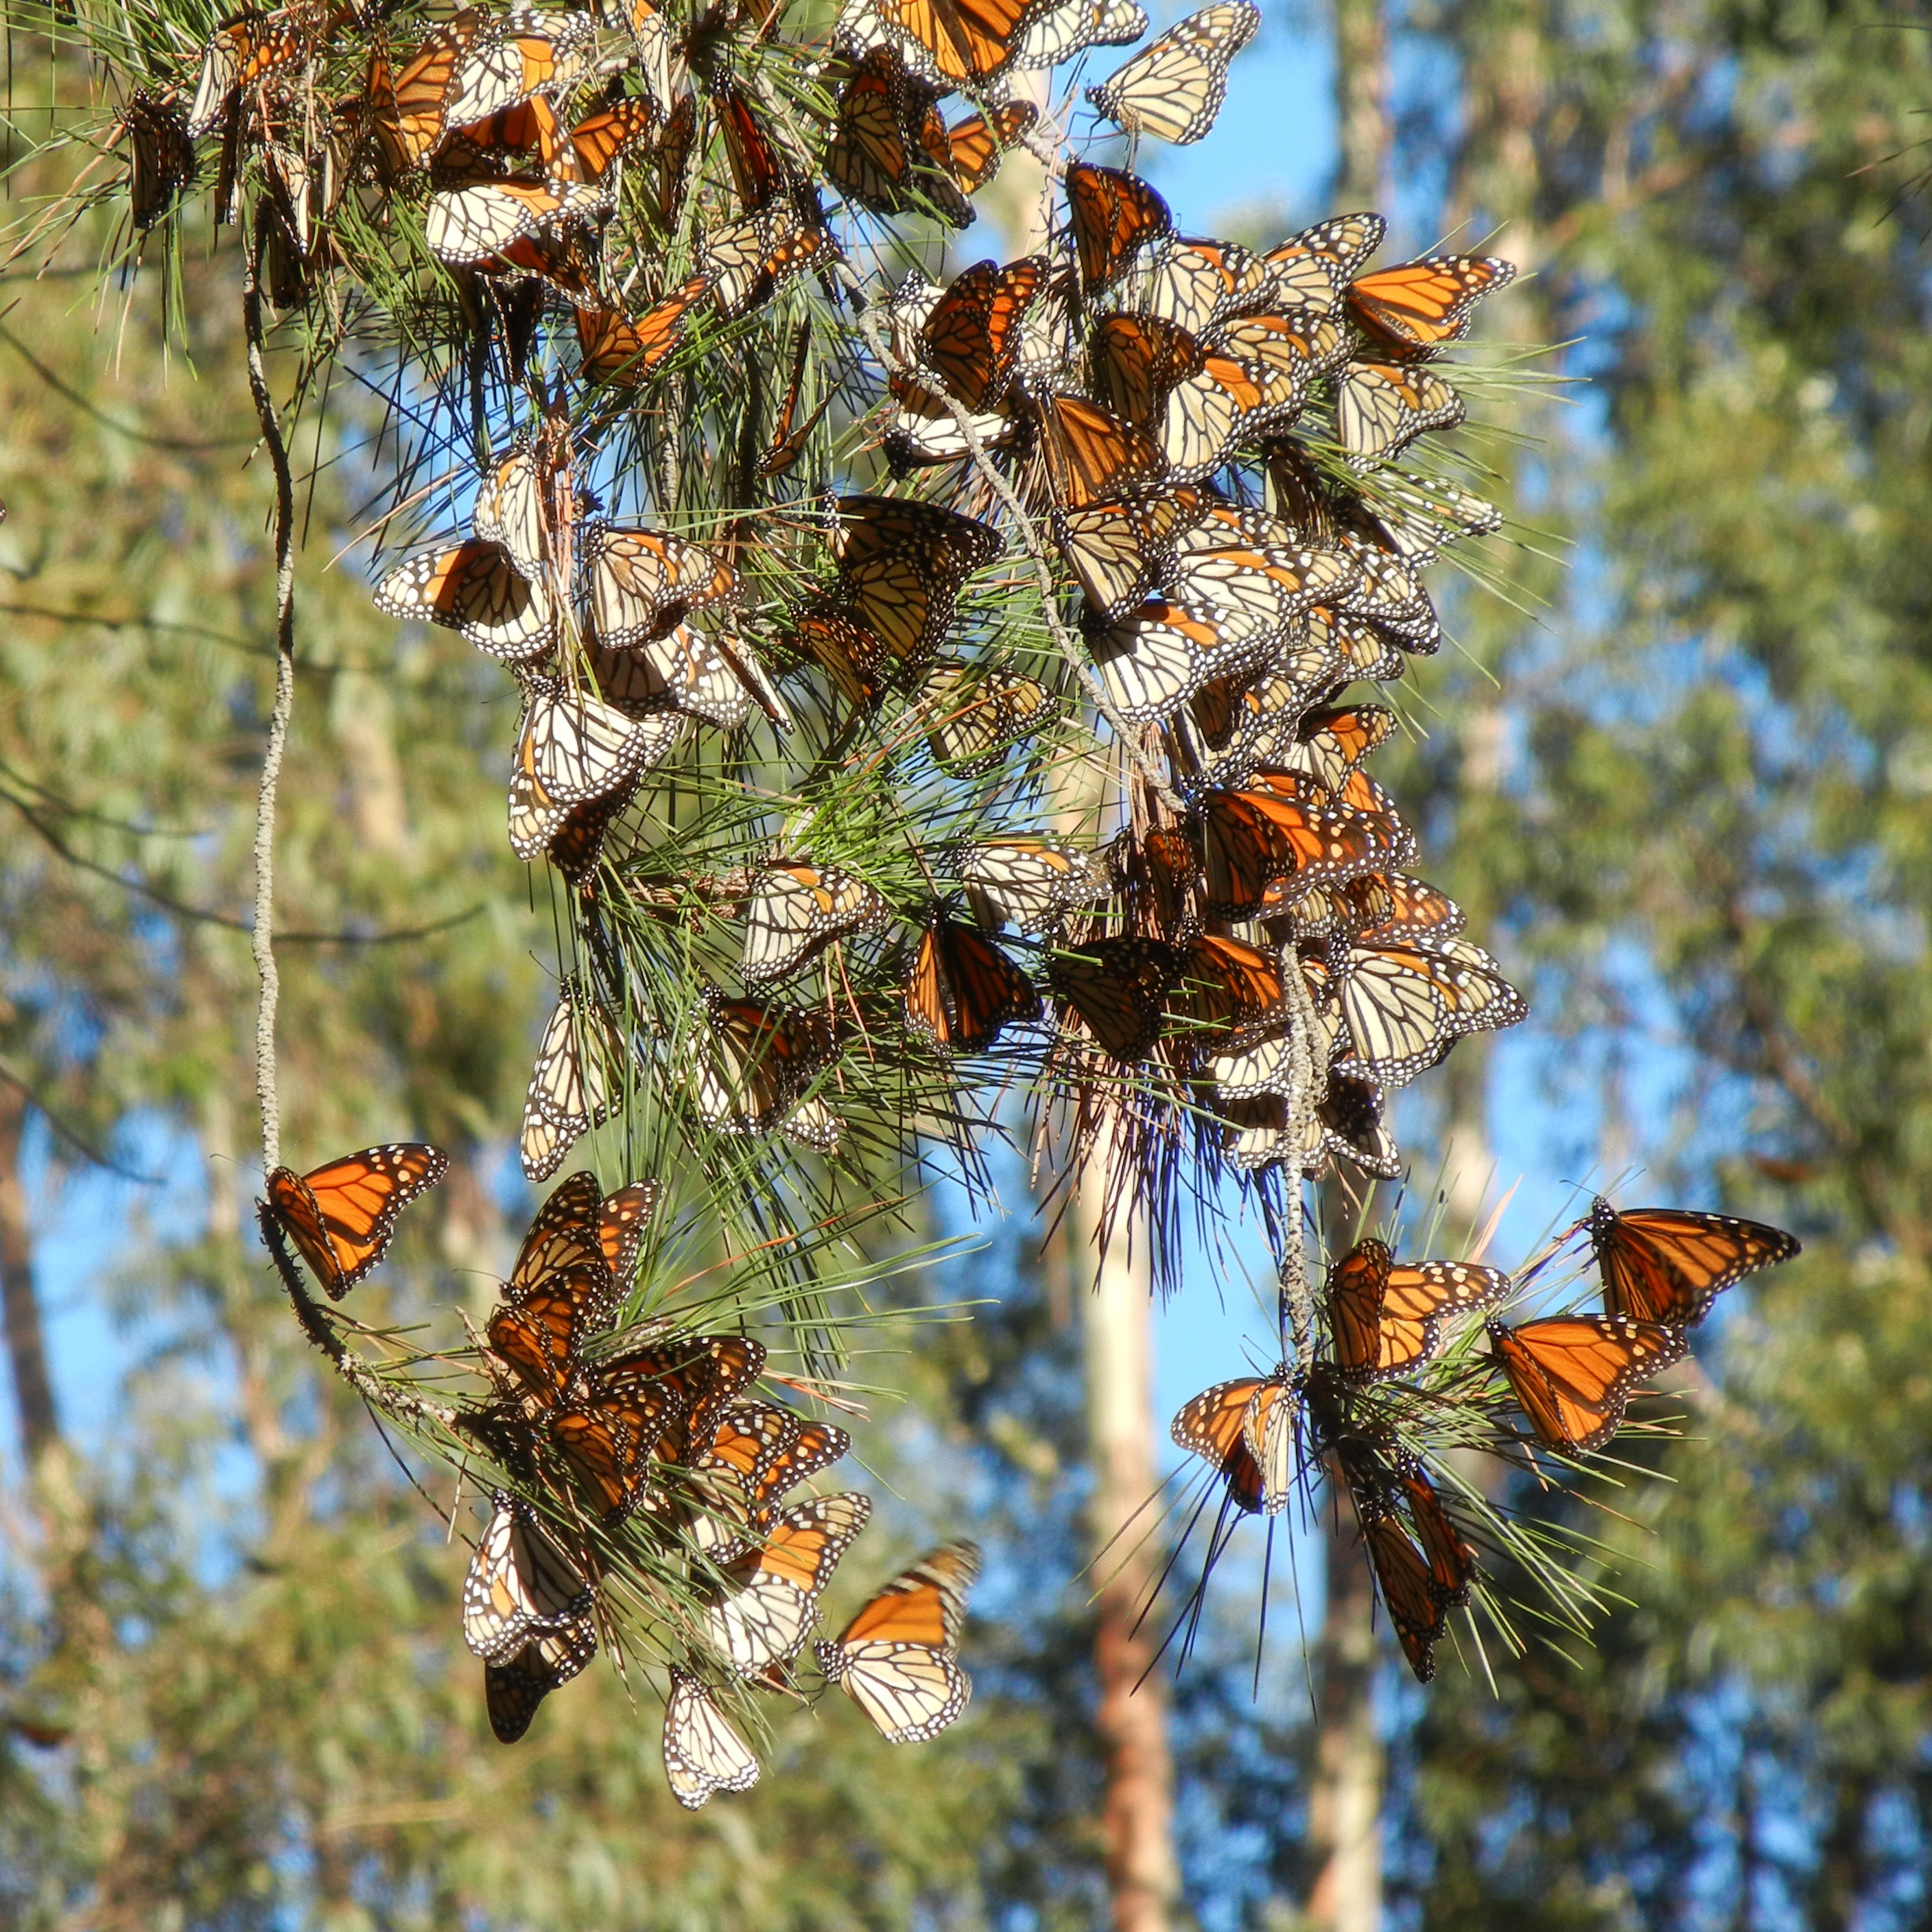 Monarchs cluster on a pine branch. The butterflies that have their wings closed are more drab in color, resembling dead leaves. The butterflies that have their wings open are bright orange and stand out against the scene's browns, greens, and blues.